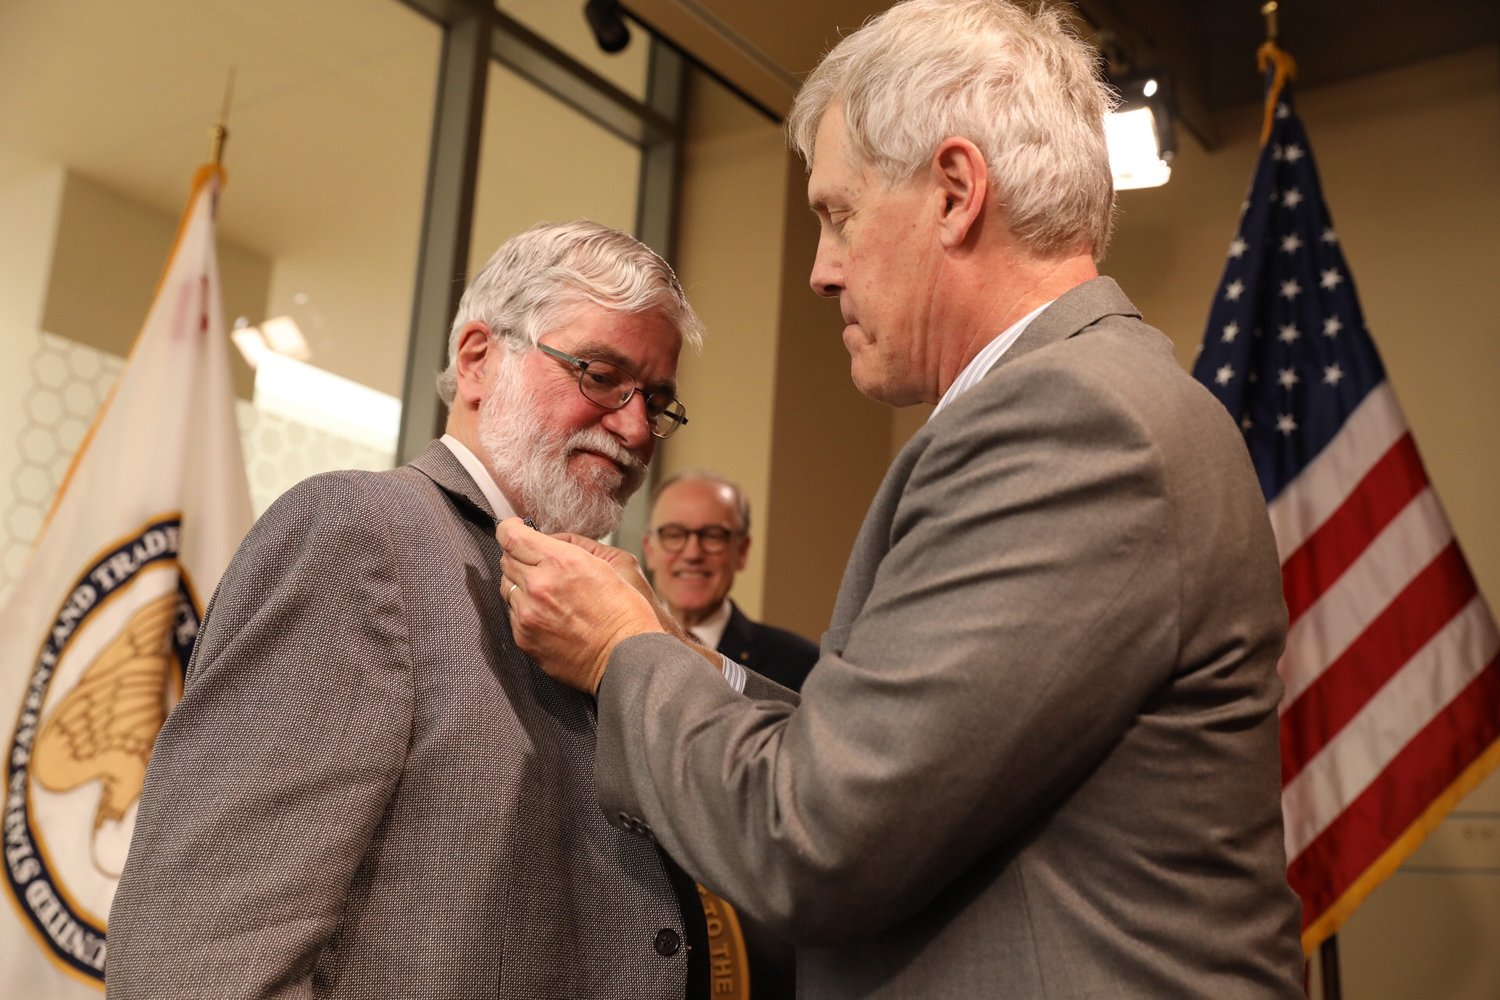 Don Arney is pinned by 2011 NIHF Inductee, Steve Sasson, at the 2017 Illumination Ceremony.